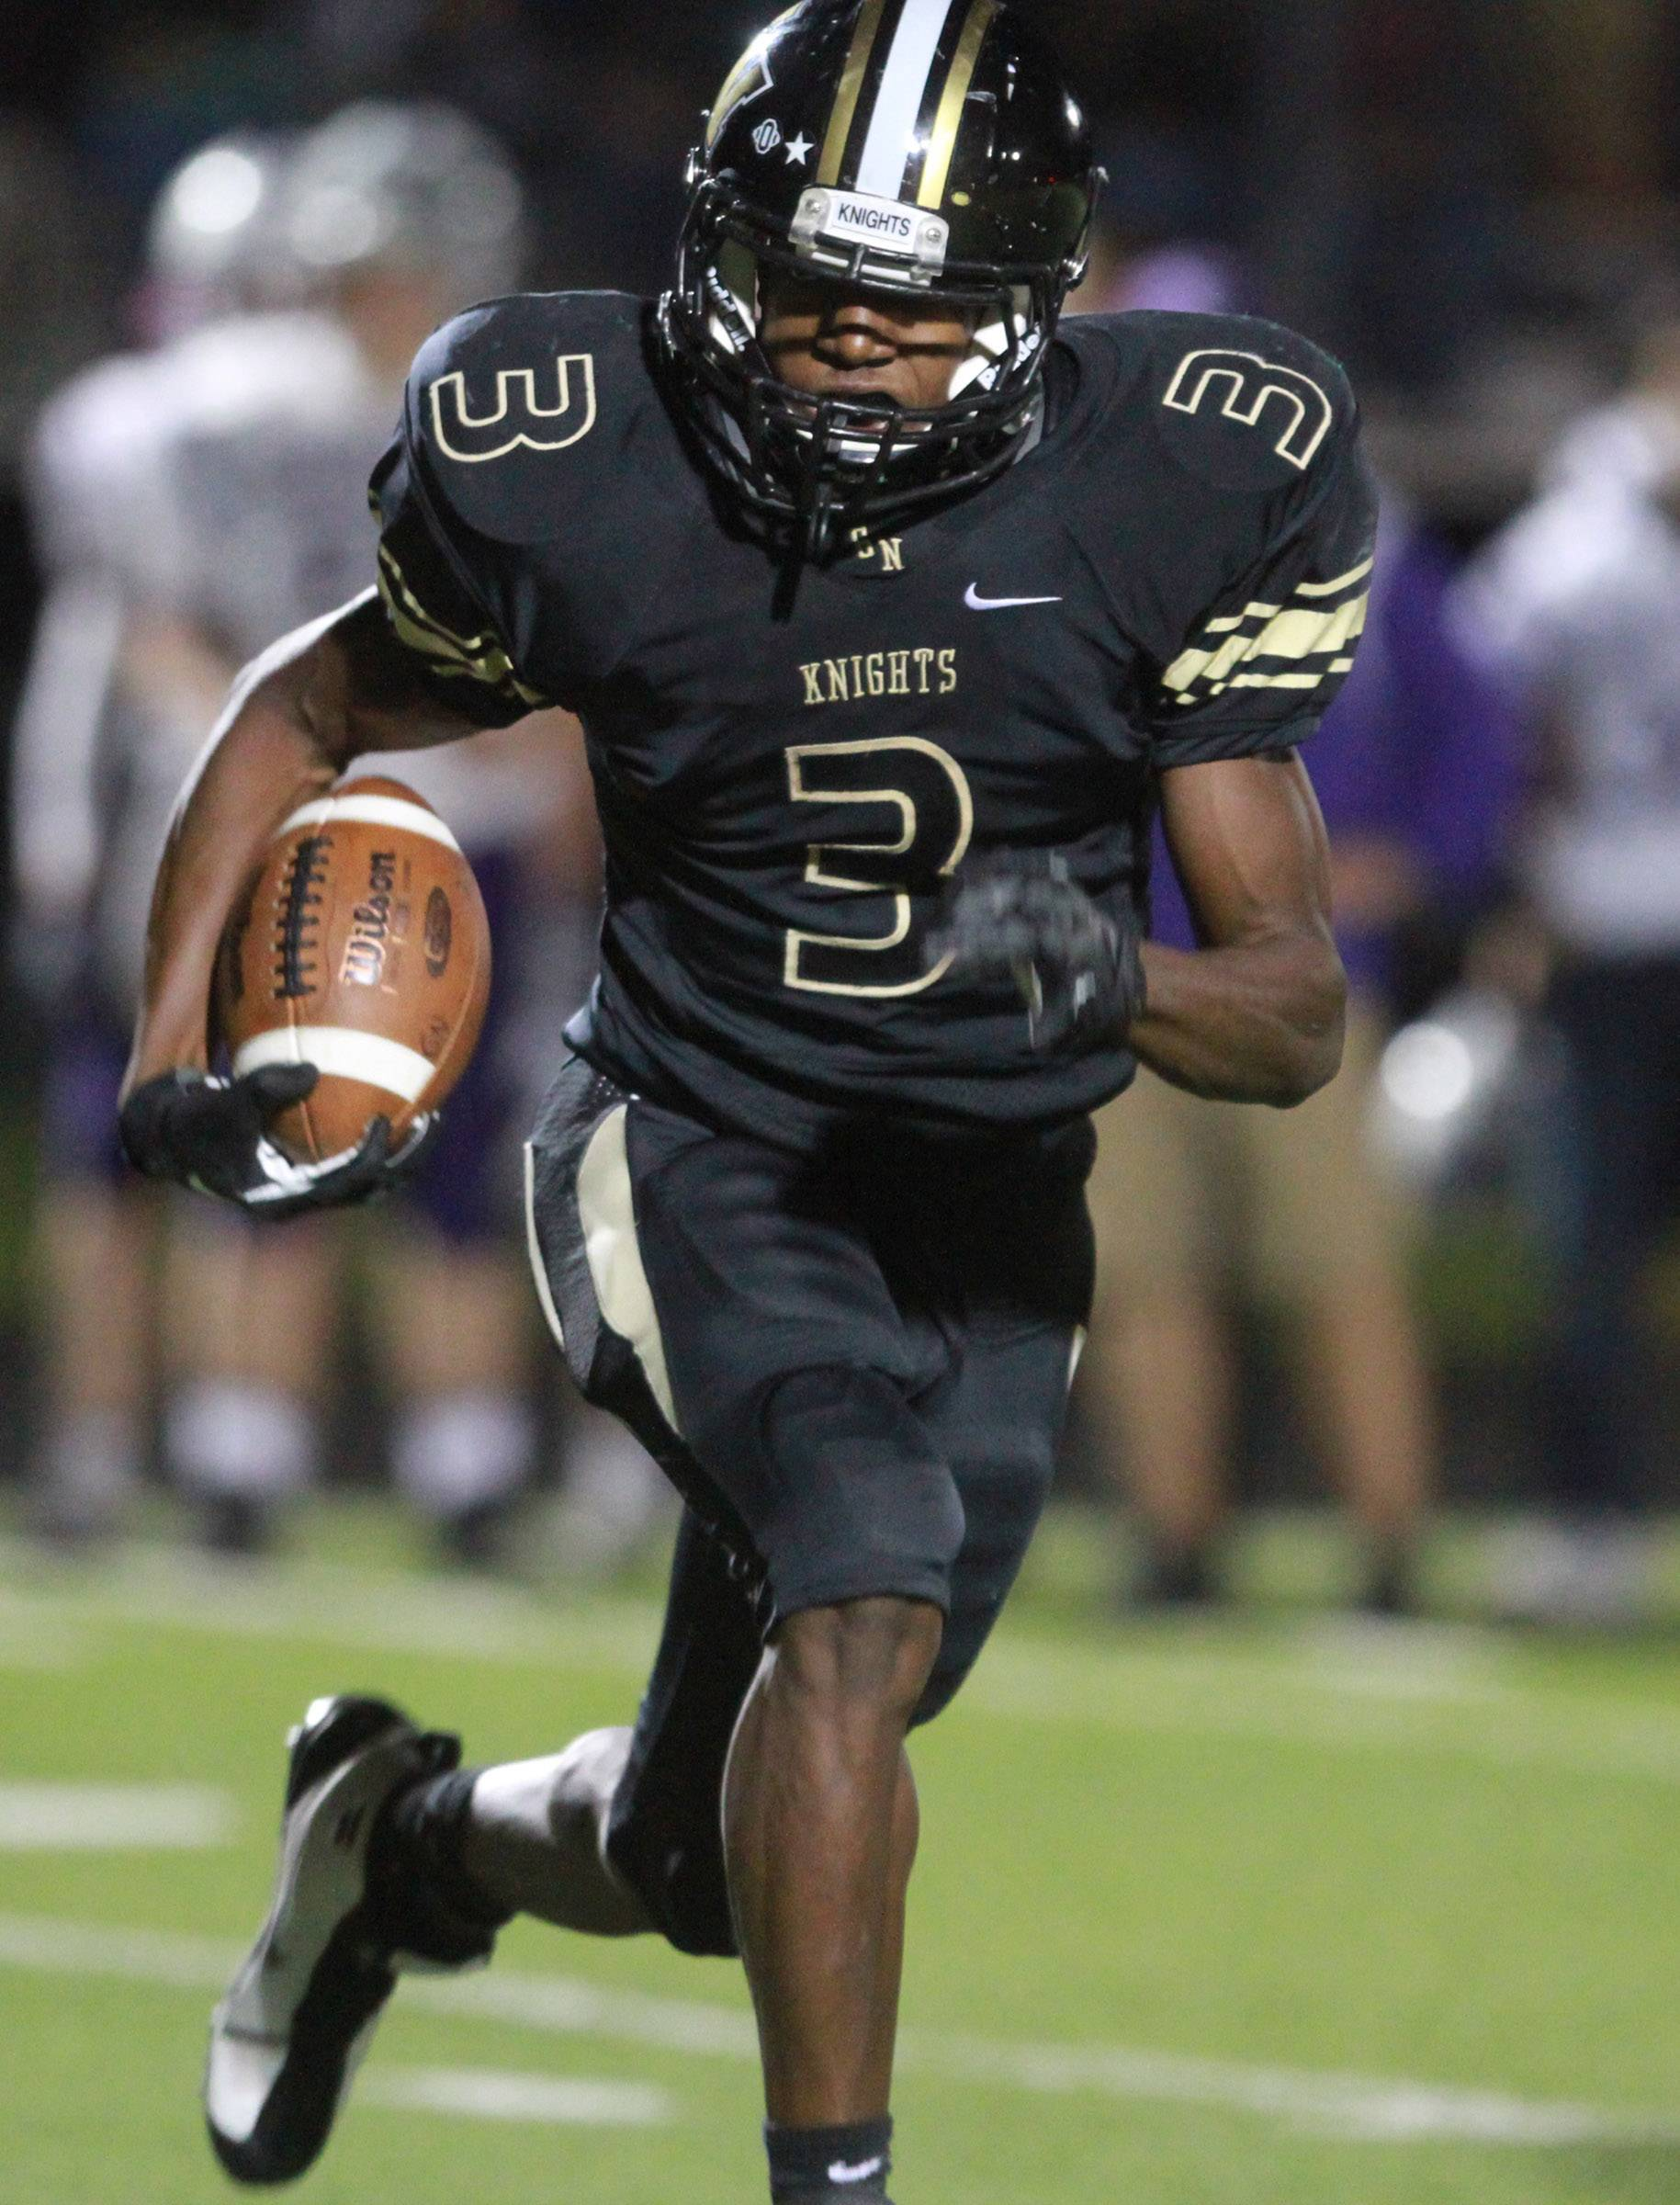 Grayslake North's Titus Booker, an incoming senior, announced that he will attend and play college football at Indiana.